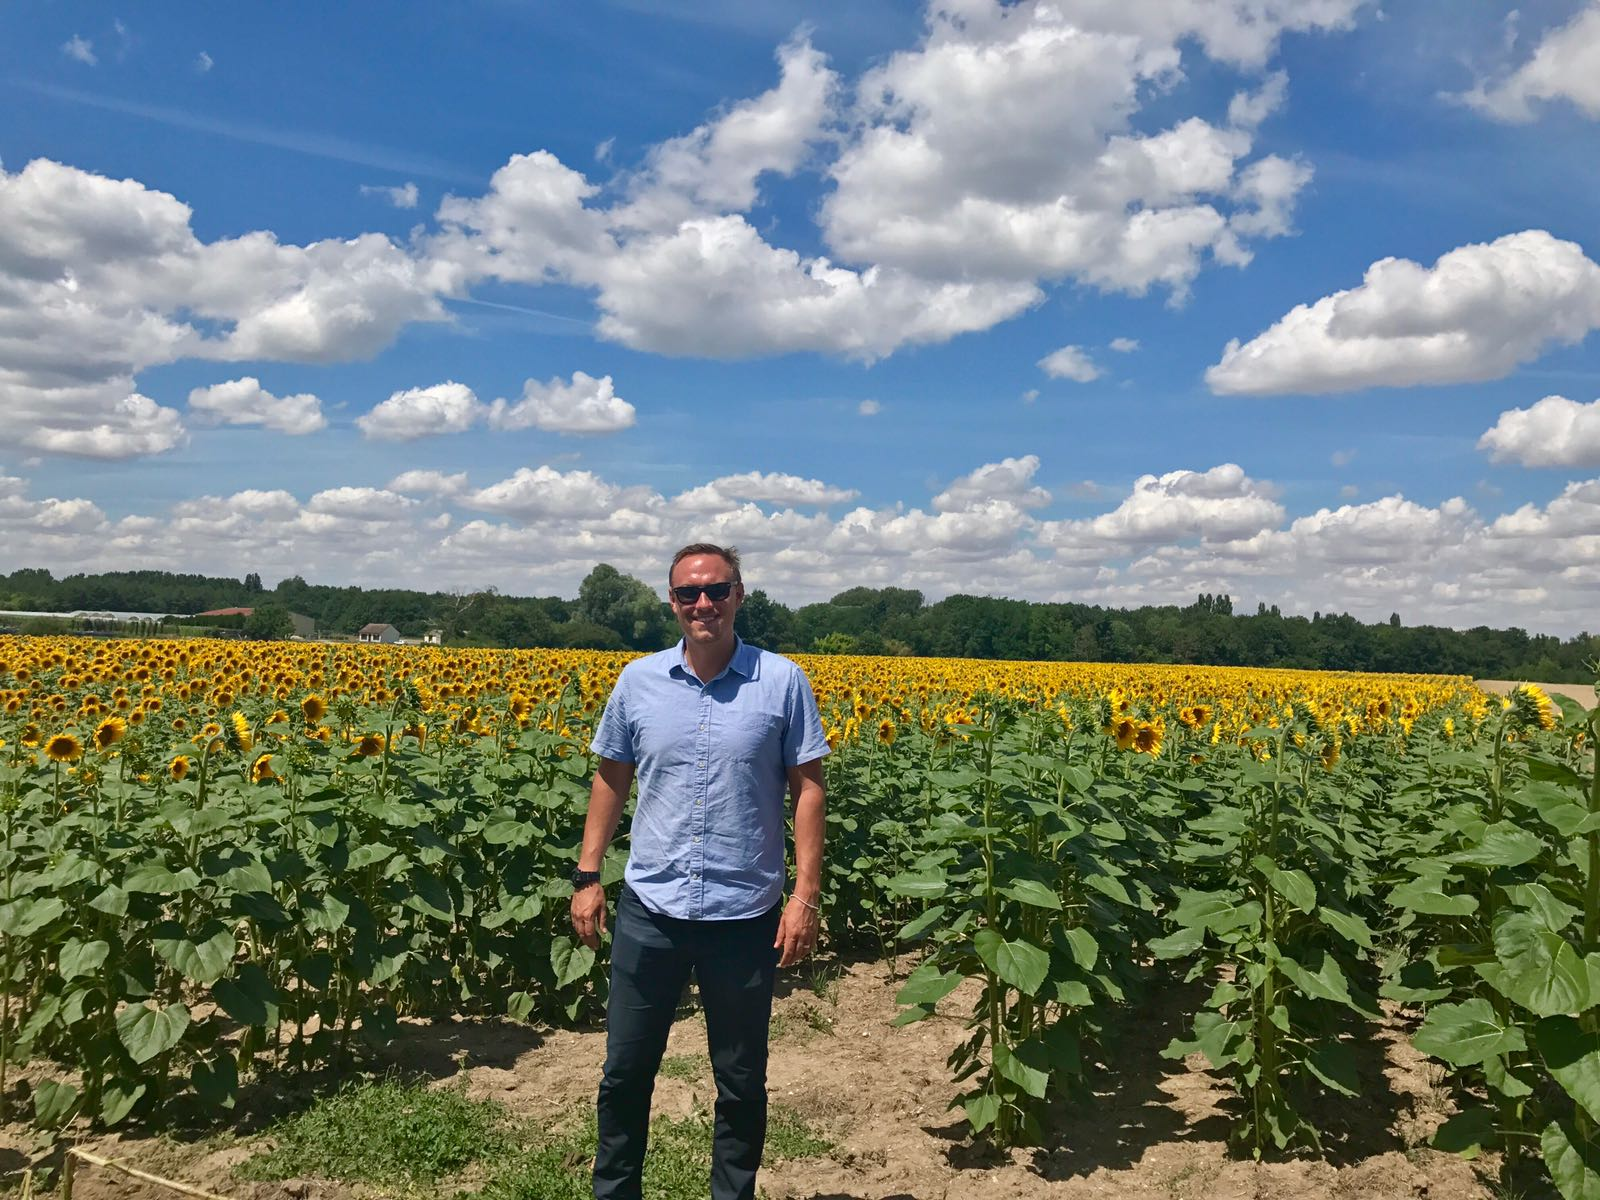 In addition to grapes, many other crops are farmed in the Loire -- like sunflowers!